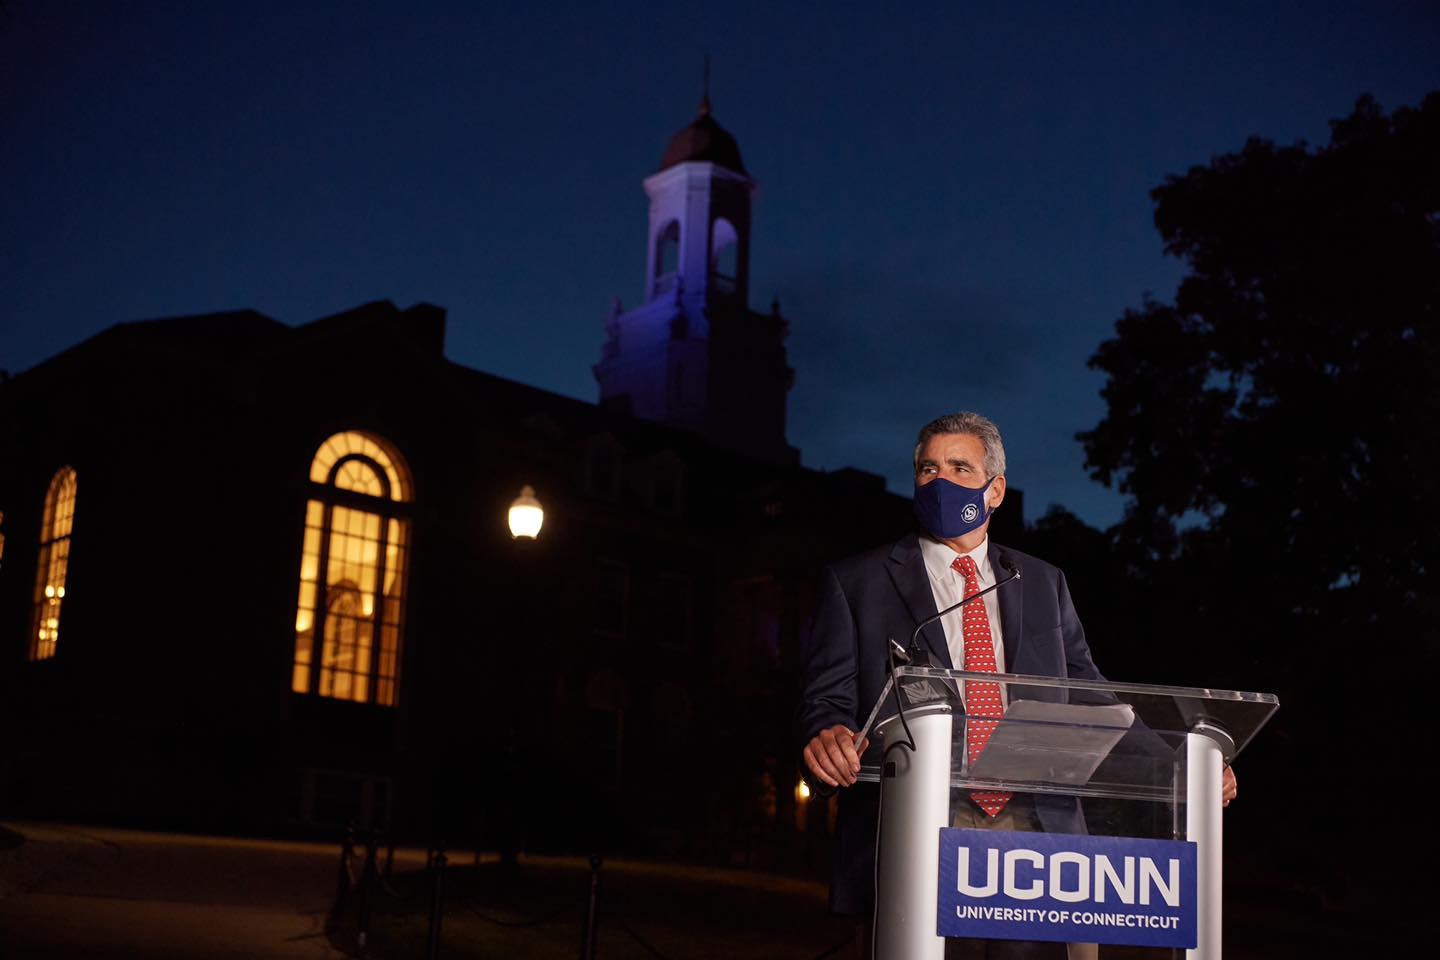 Finance Committee approves $46 million in bonding so UConn can hire researchers